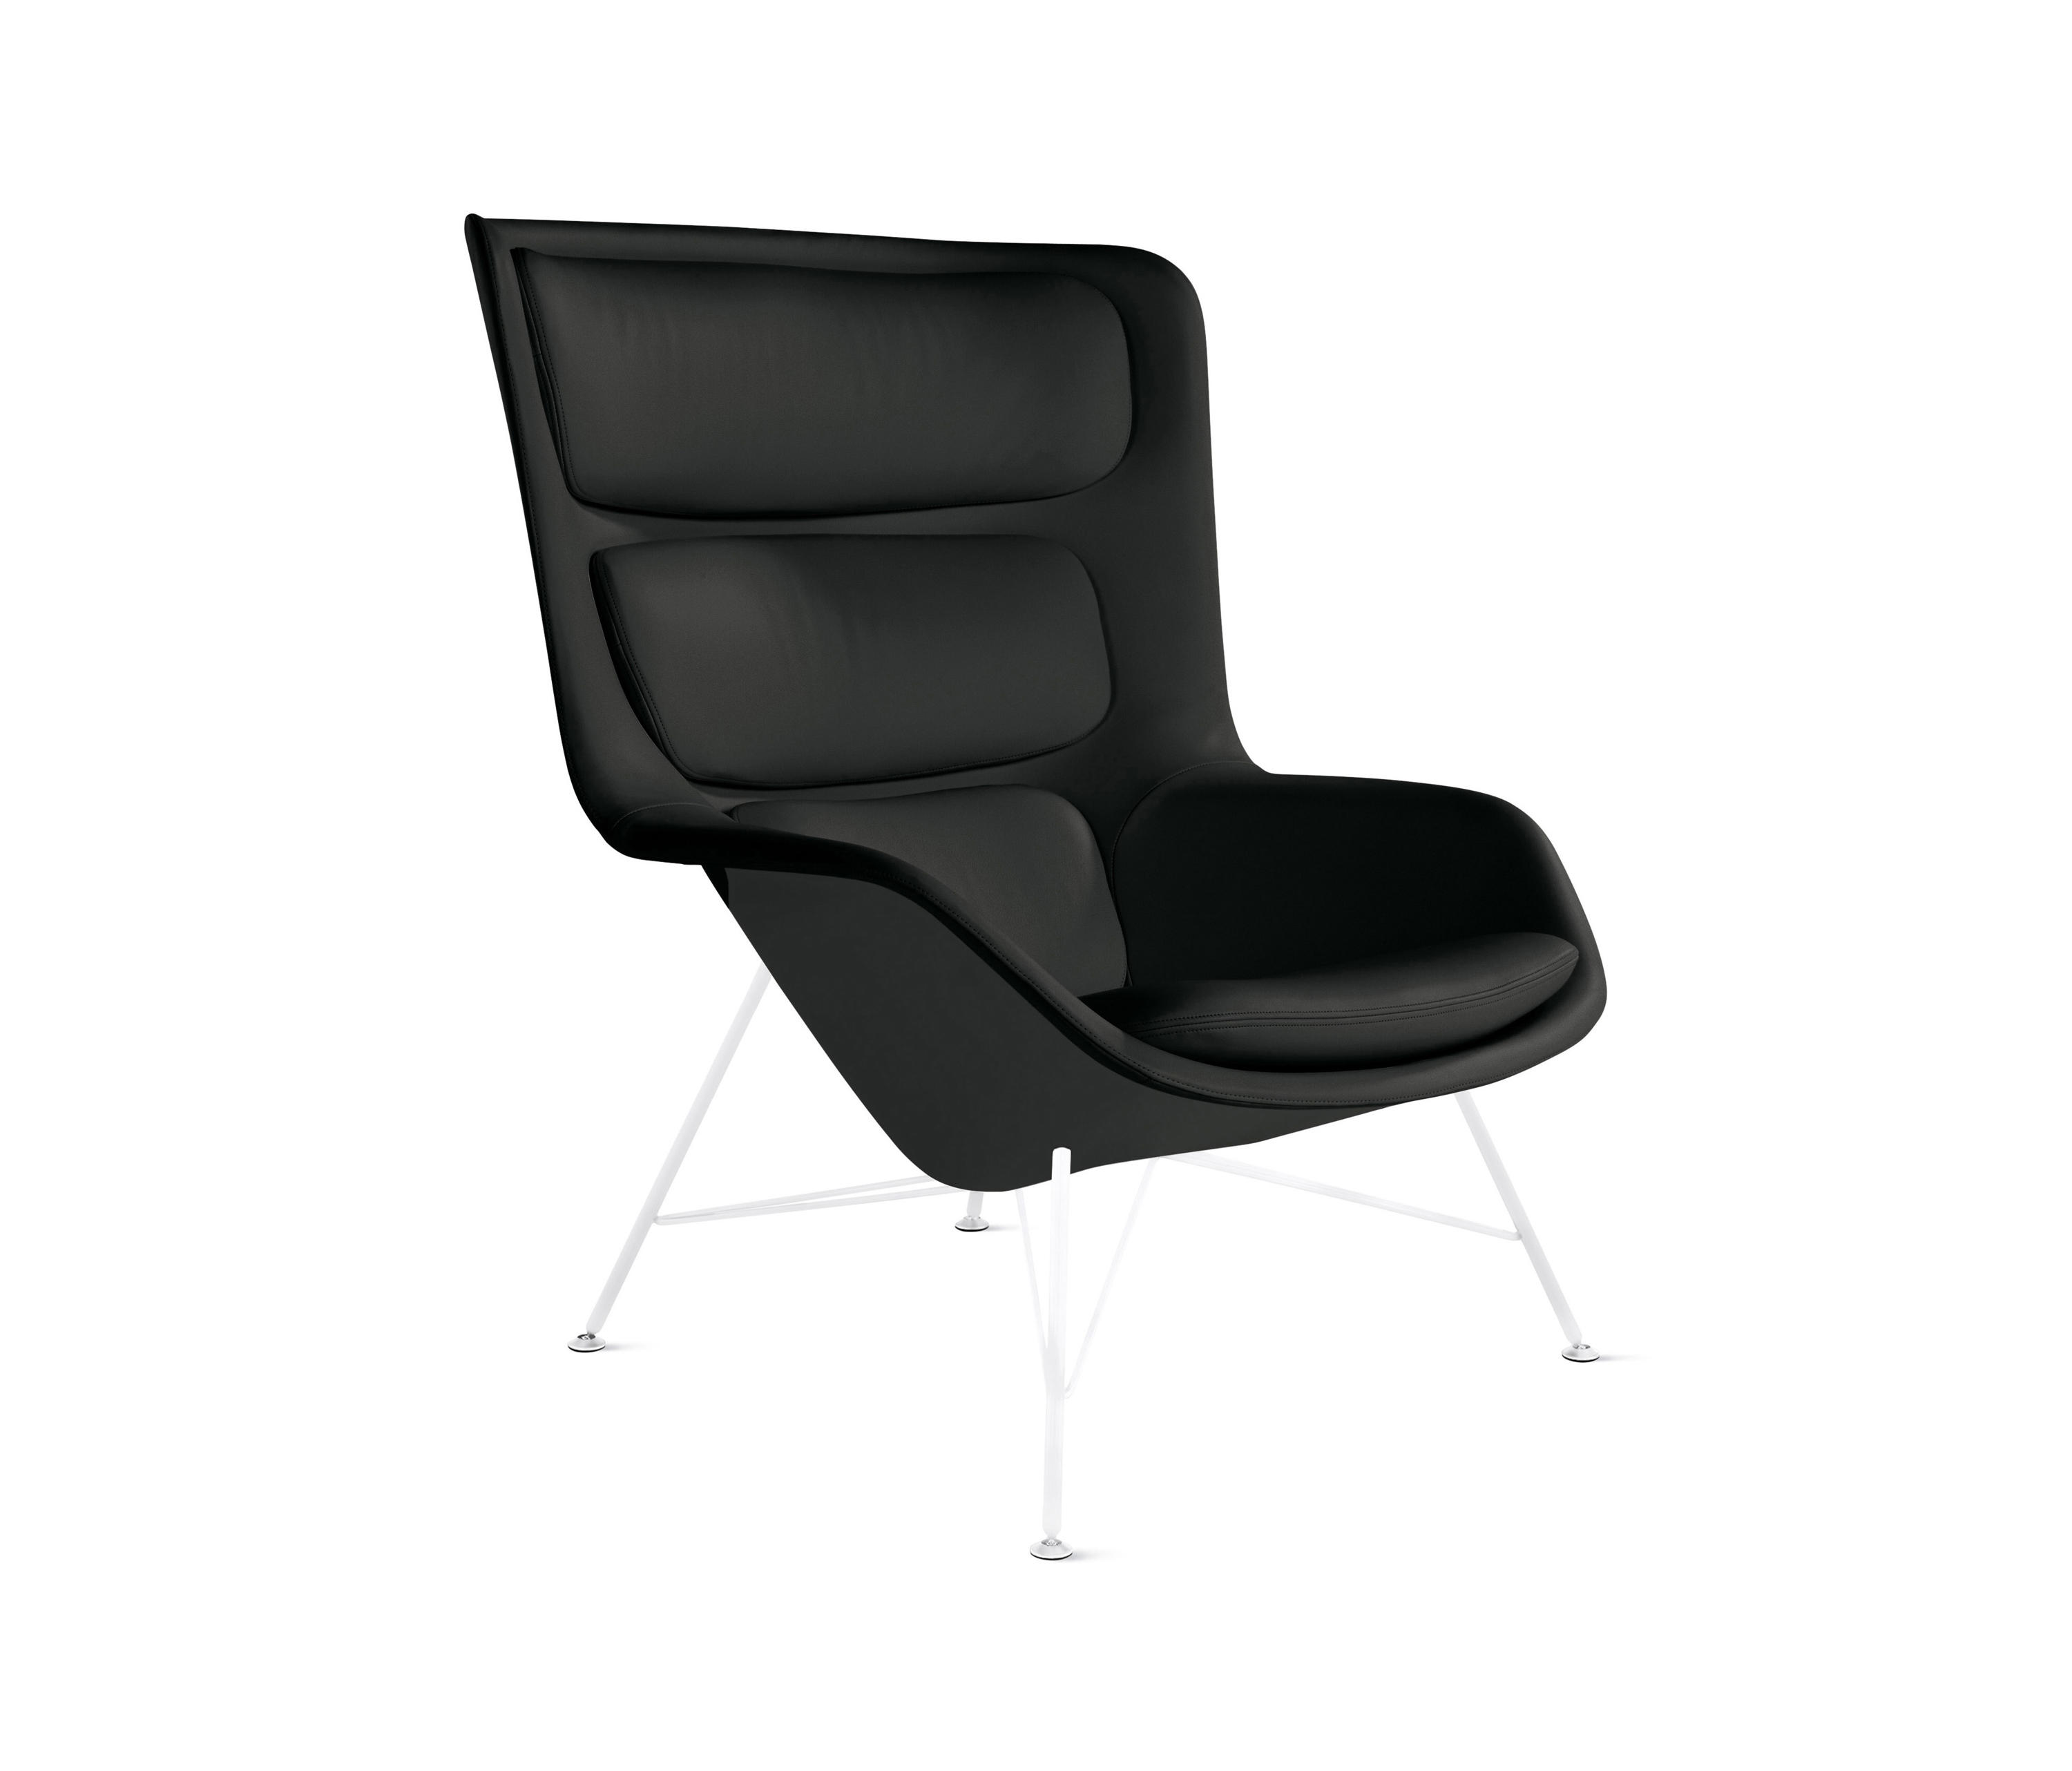 chairs cubic for beekum radboud chair van leather lounge by pastoe